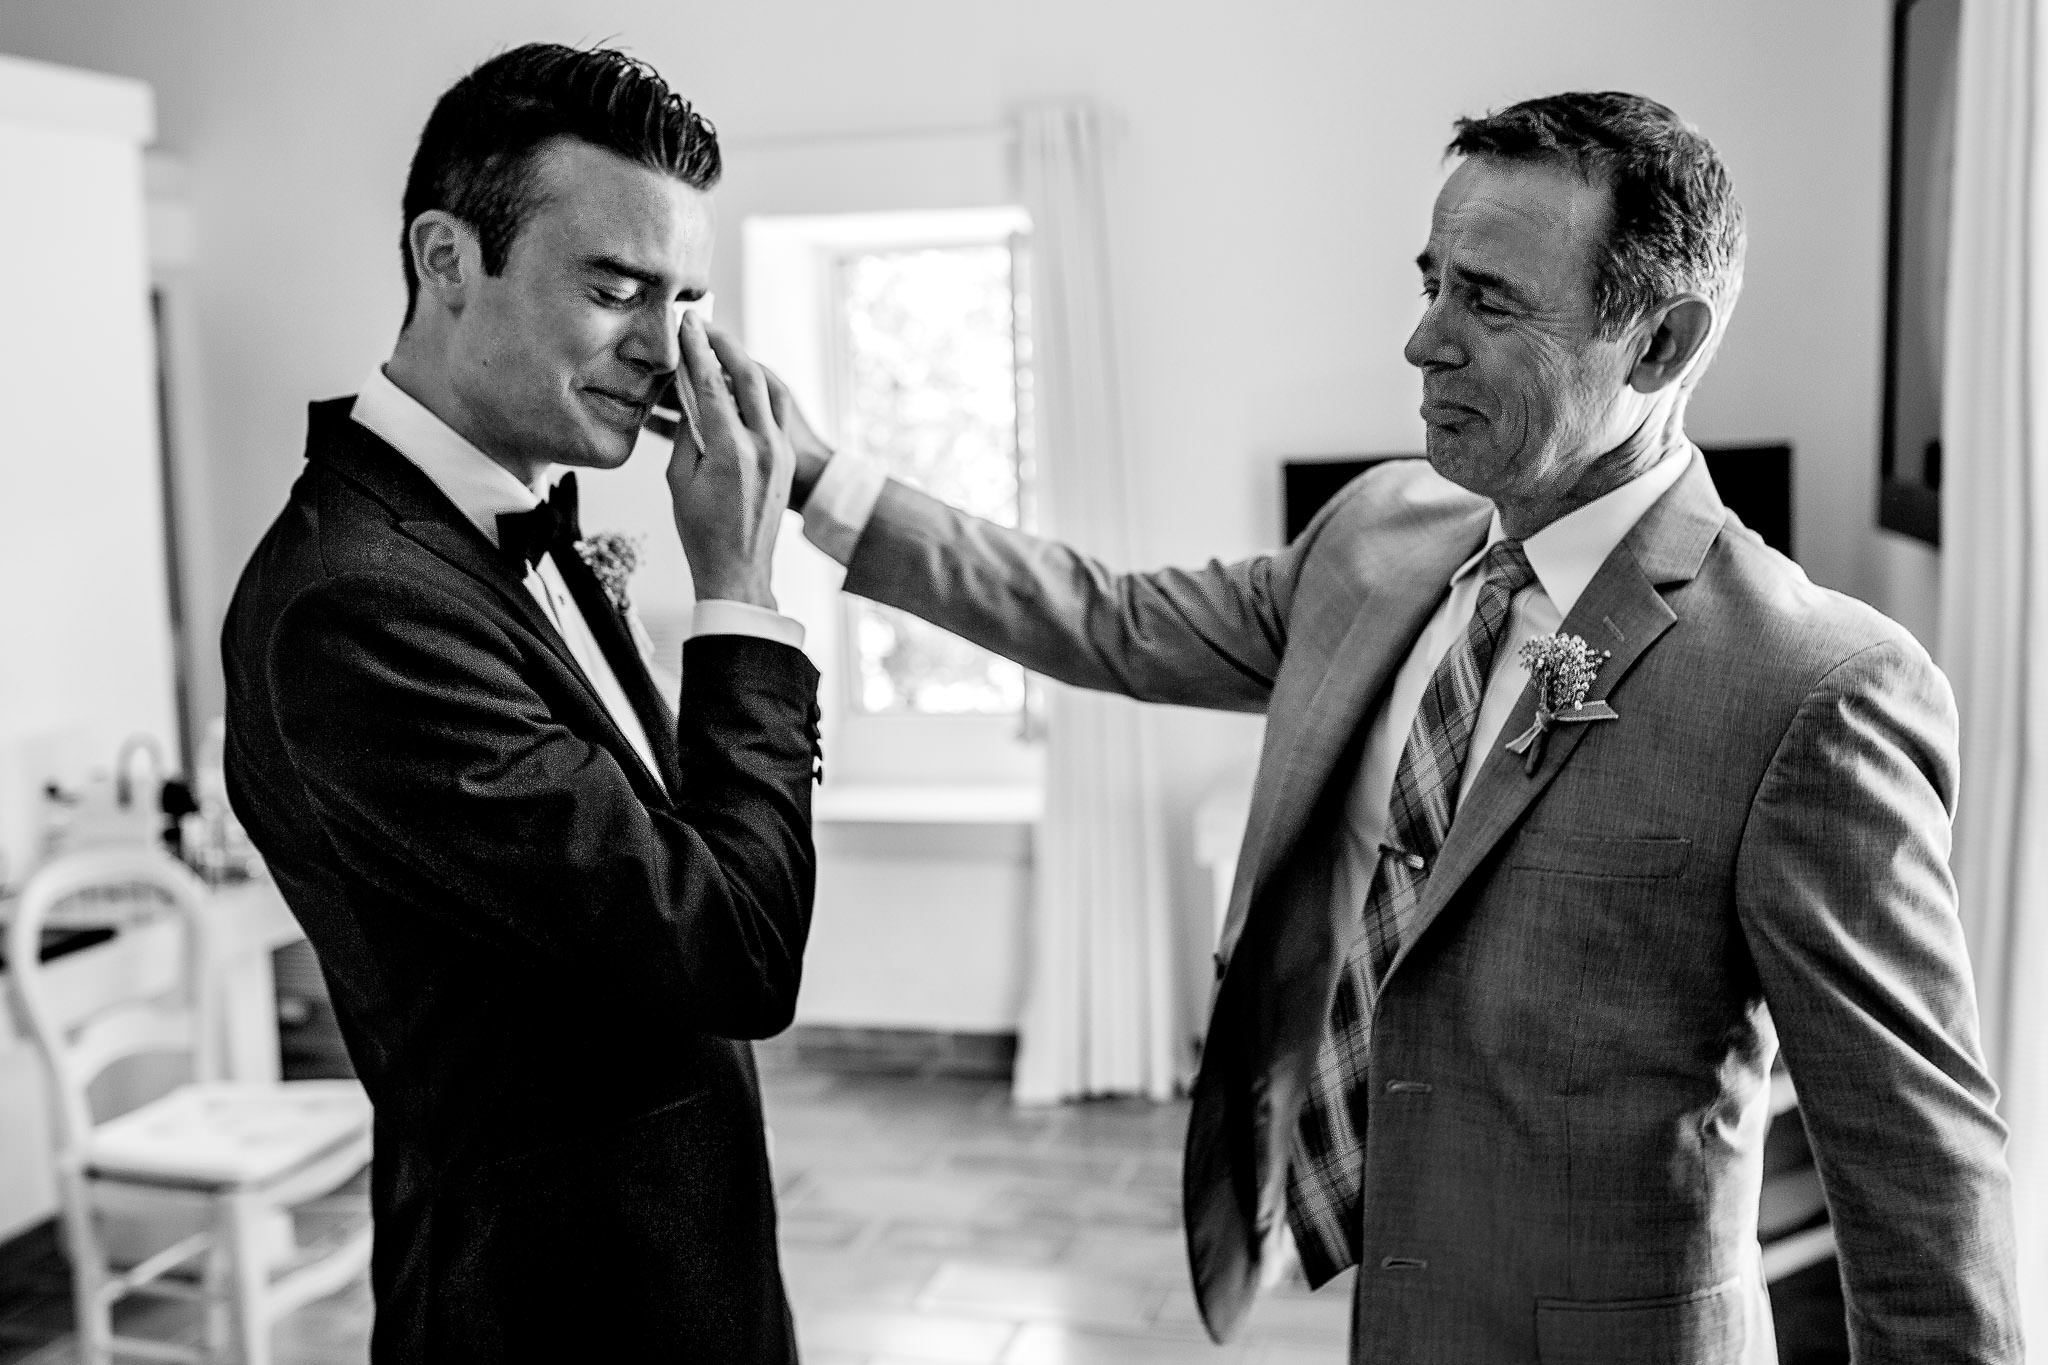 Father and Groom emotional connection at French Wedding in South of France